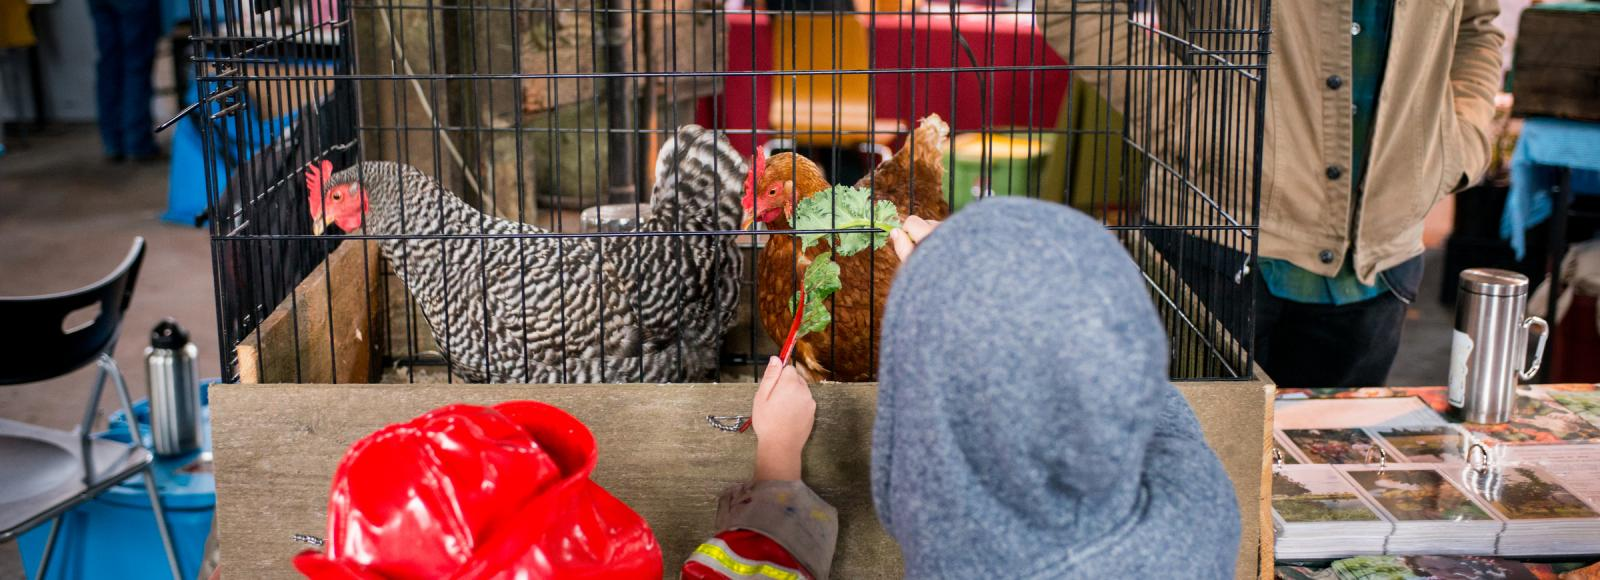 Two kids feed chard and kale to two chickens.